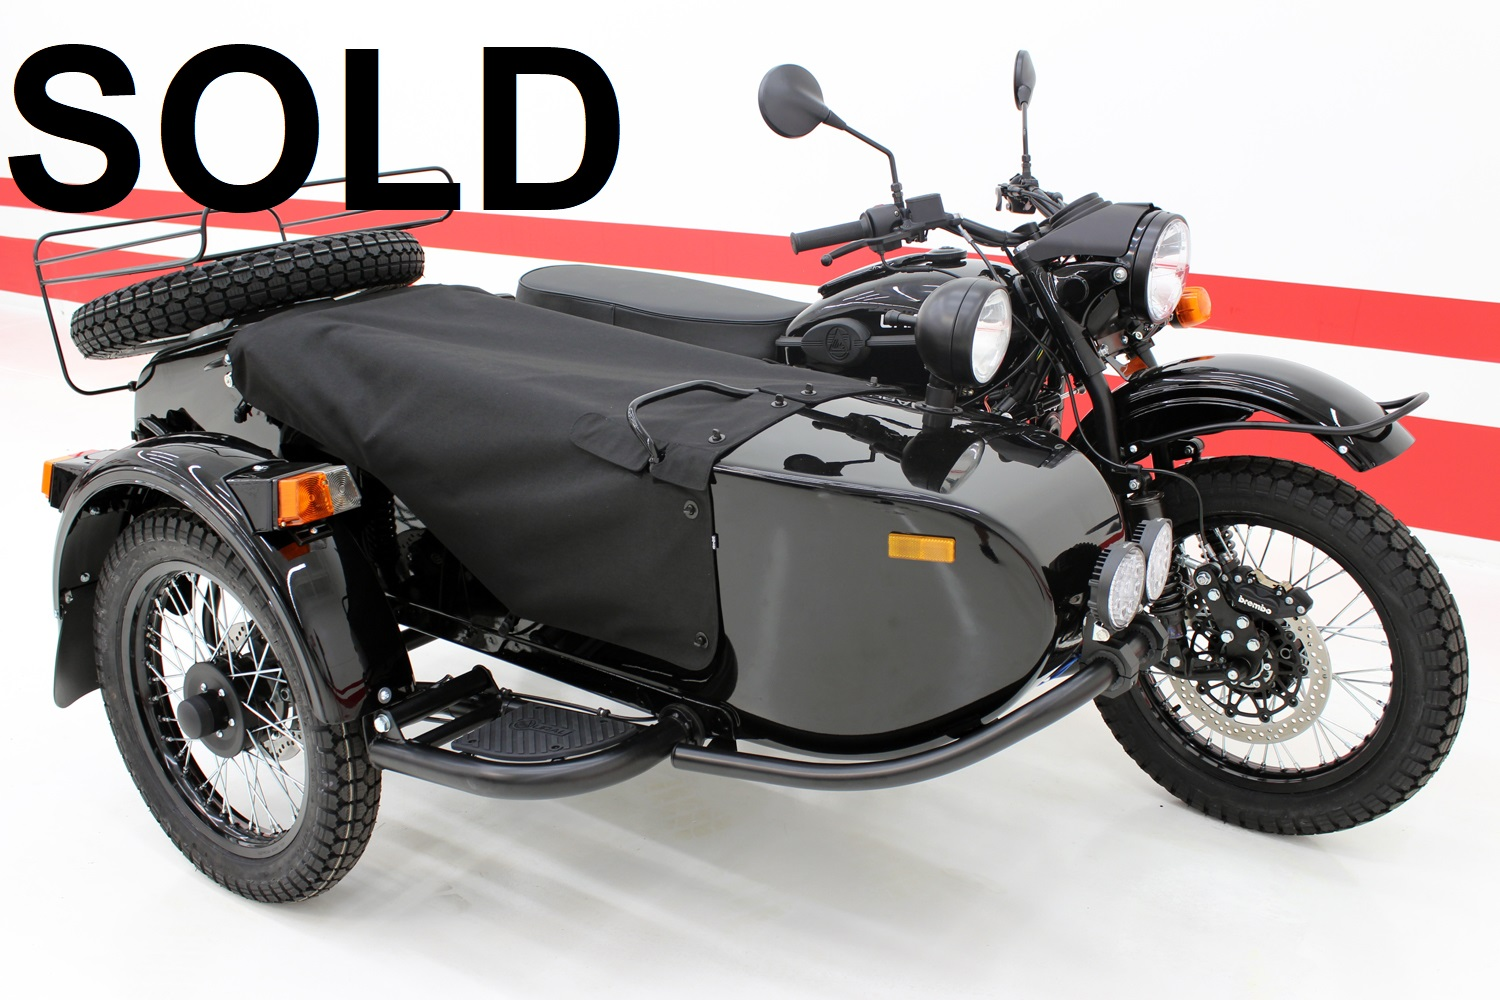 2017 Ural Gear Up (2WD) - SPECIAL ORDER BLACK EDITION